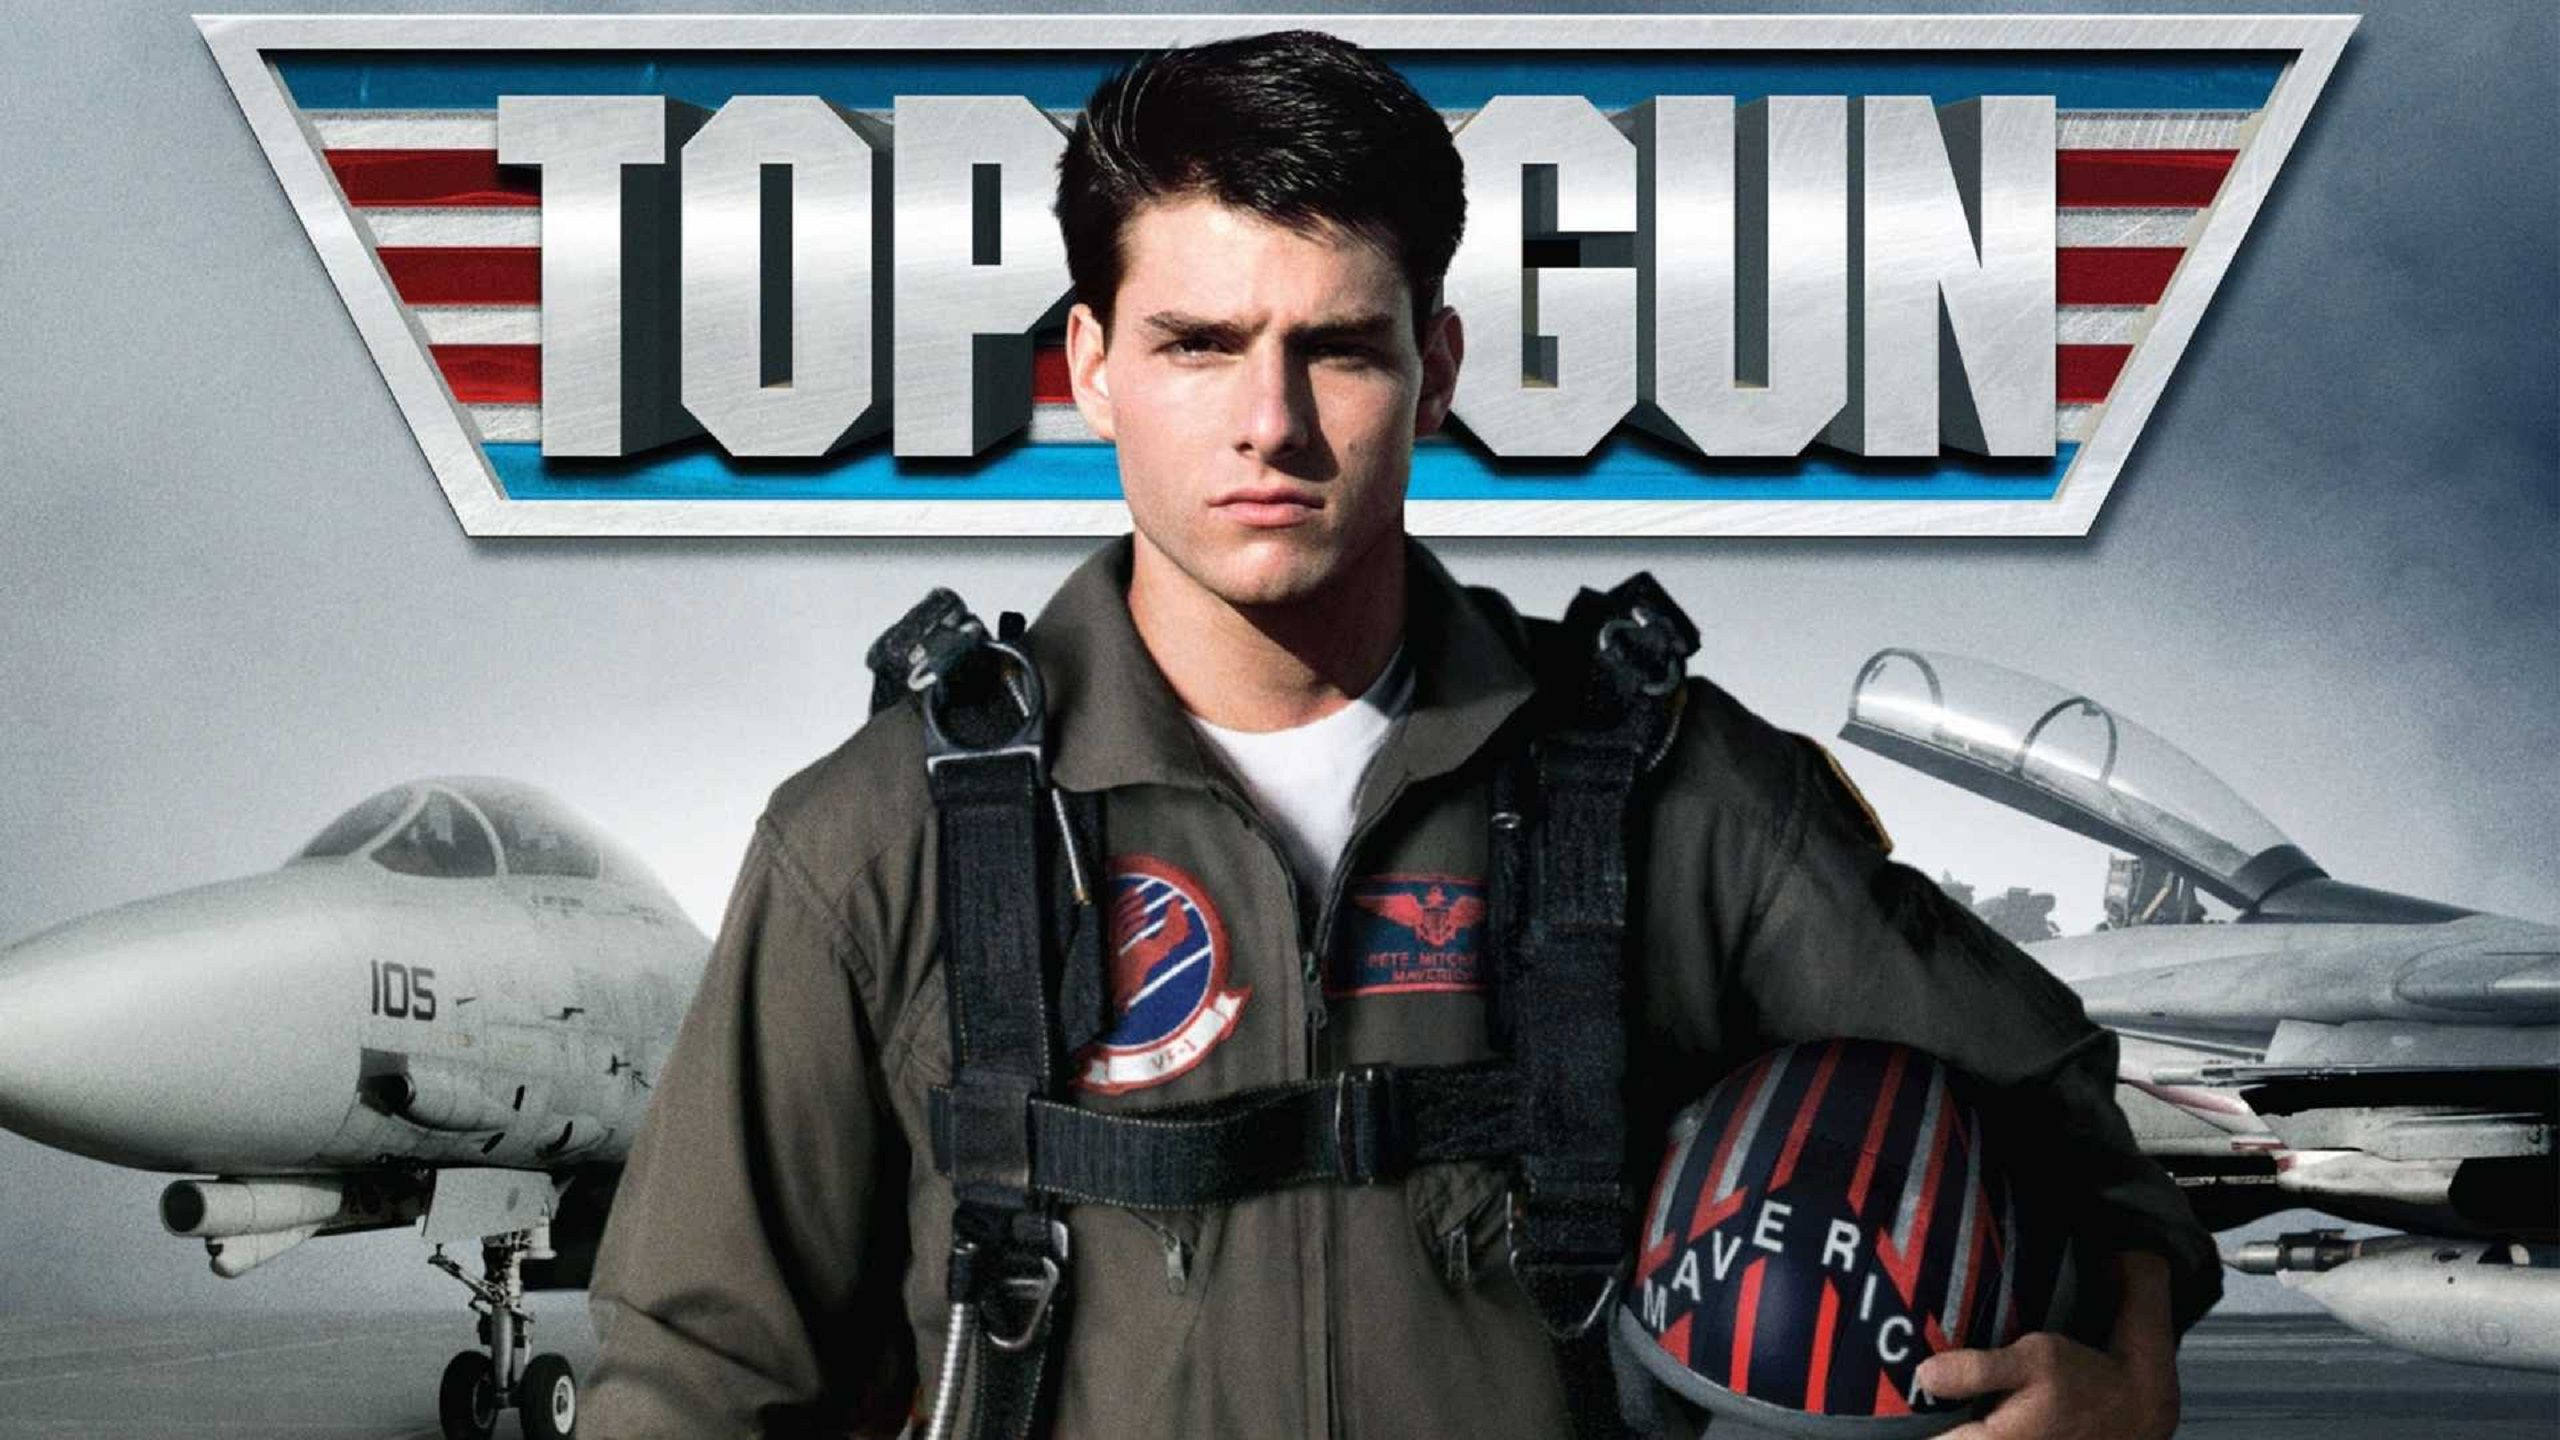 Top Gun 1986 - Maverick